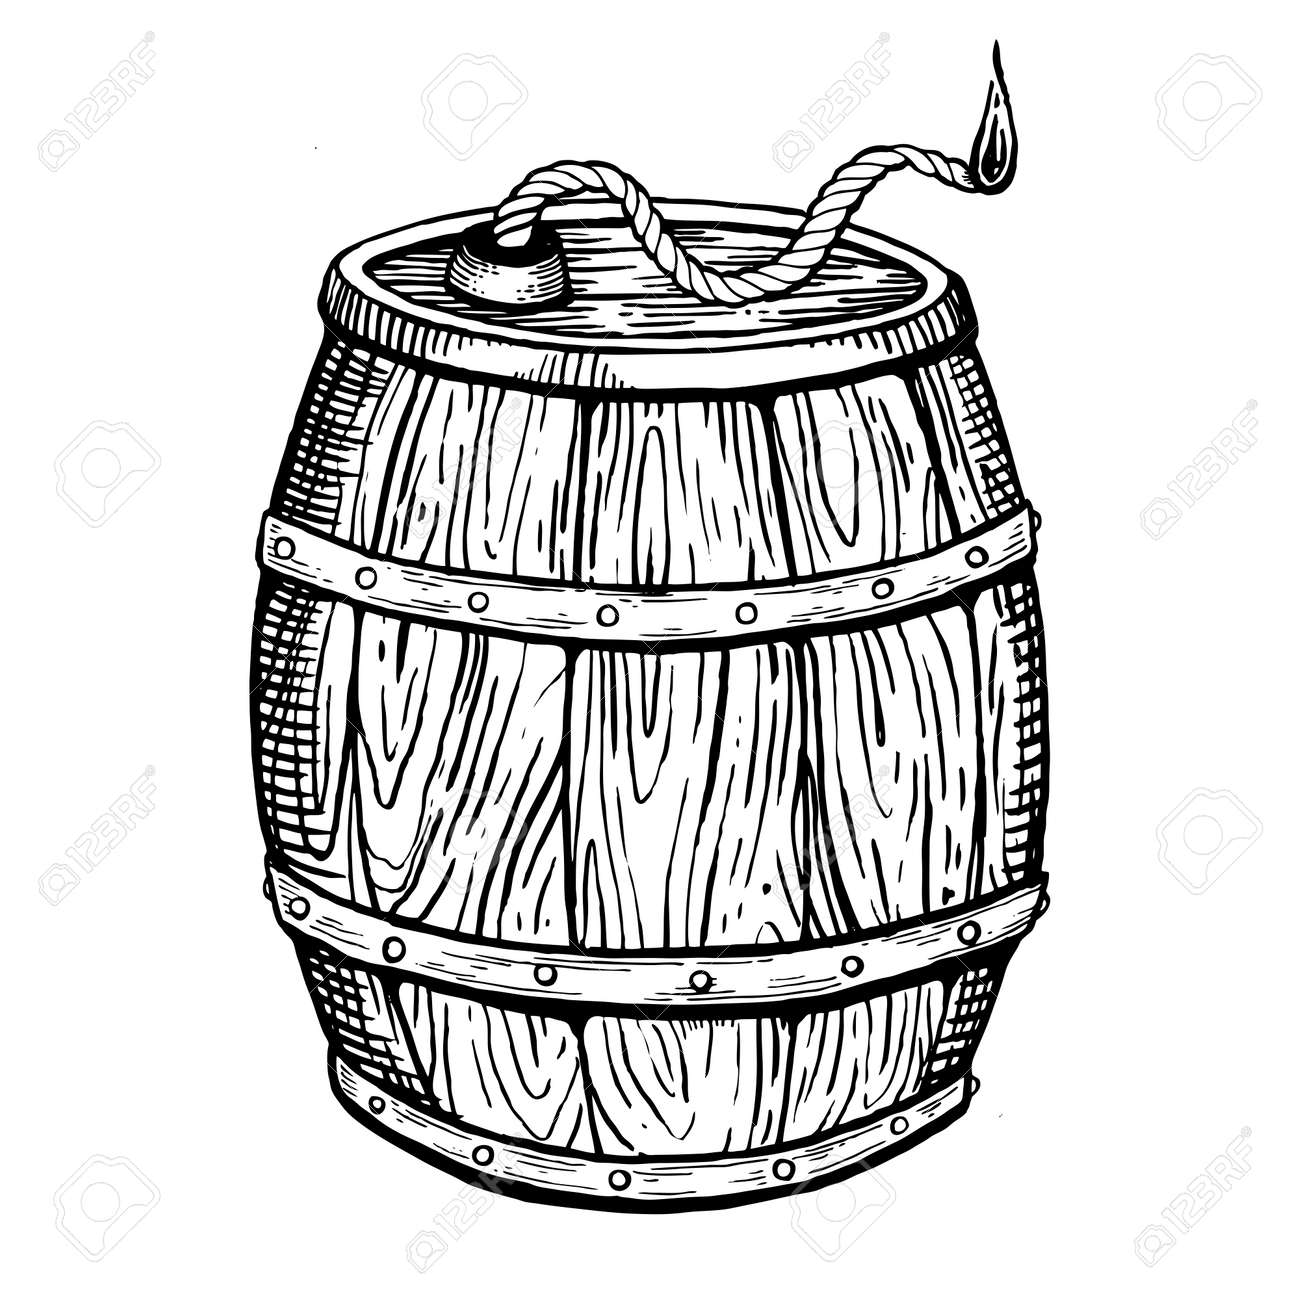 https://previews.123rf.com/images/alexpokusay/alexpokusay1711/alexpokusay171100082/89920638-powder-keg-engraving-vector-illustration.jpg